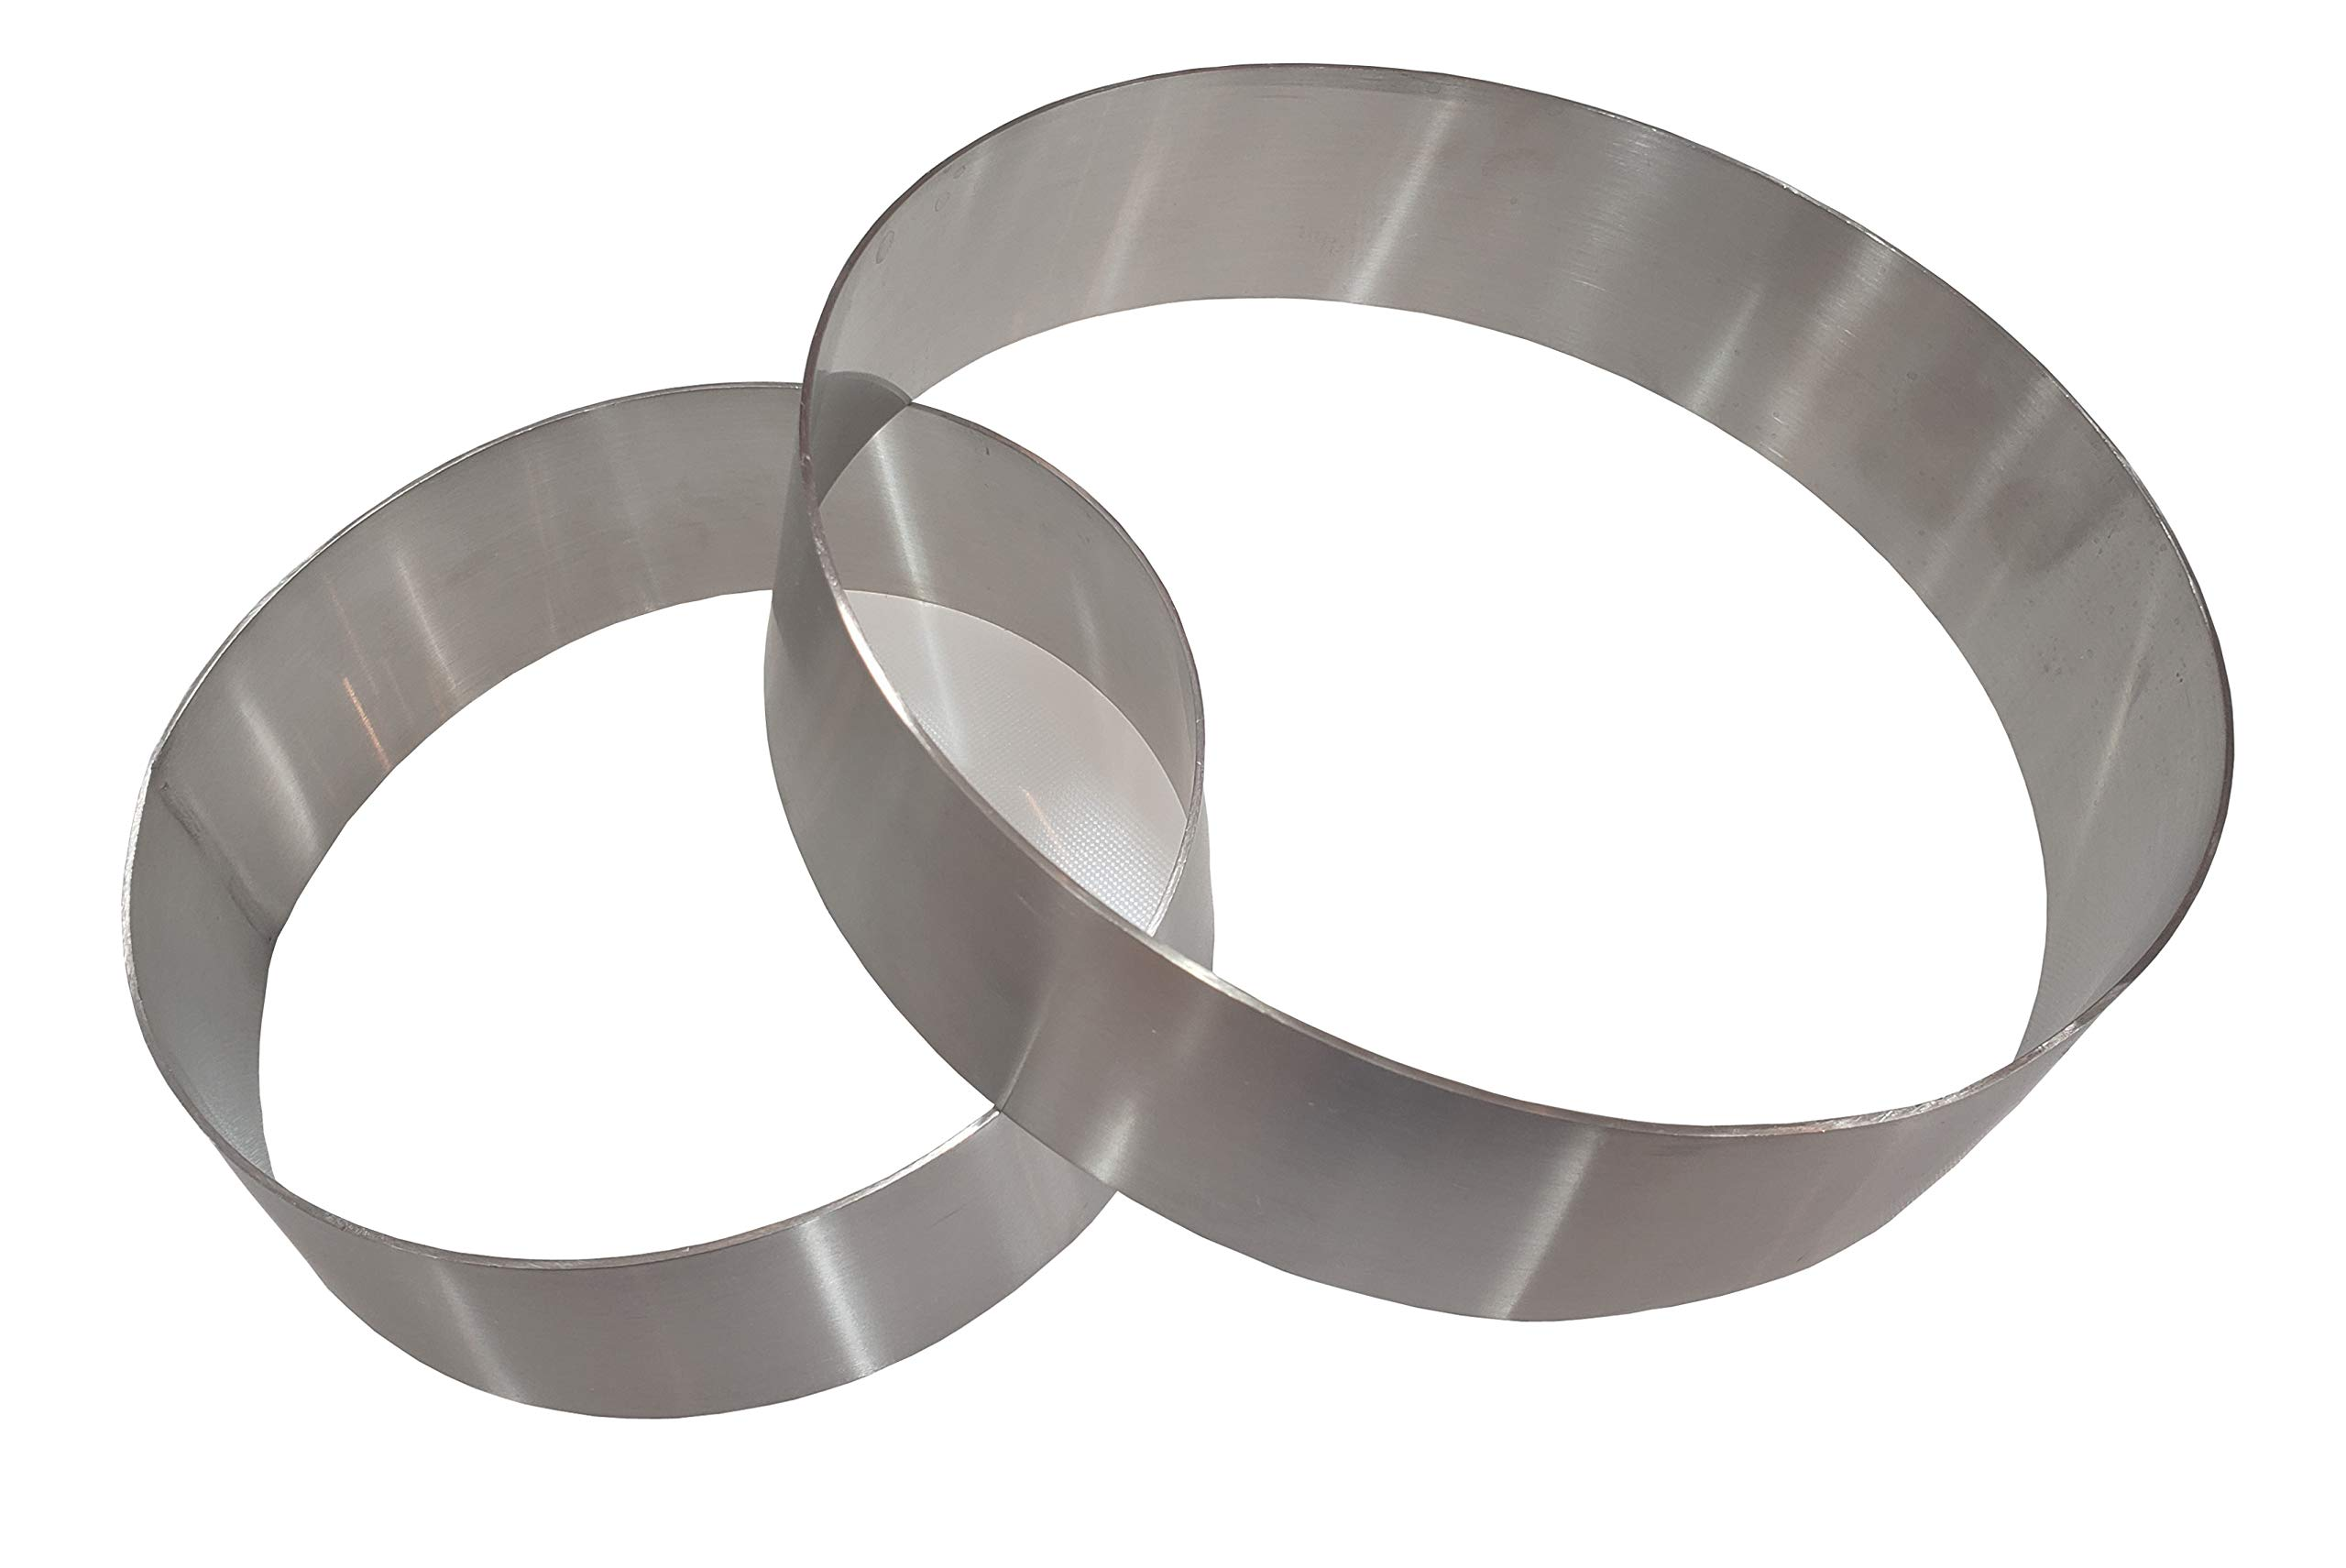 Round Cake Mold/Pastry Ring, S/S, Heavy Gauge Set of 2. (6''x2'' & 8''x2'')